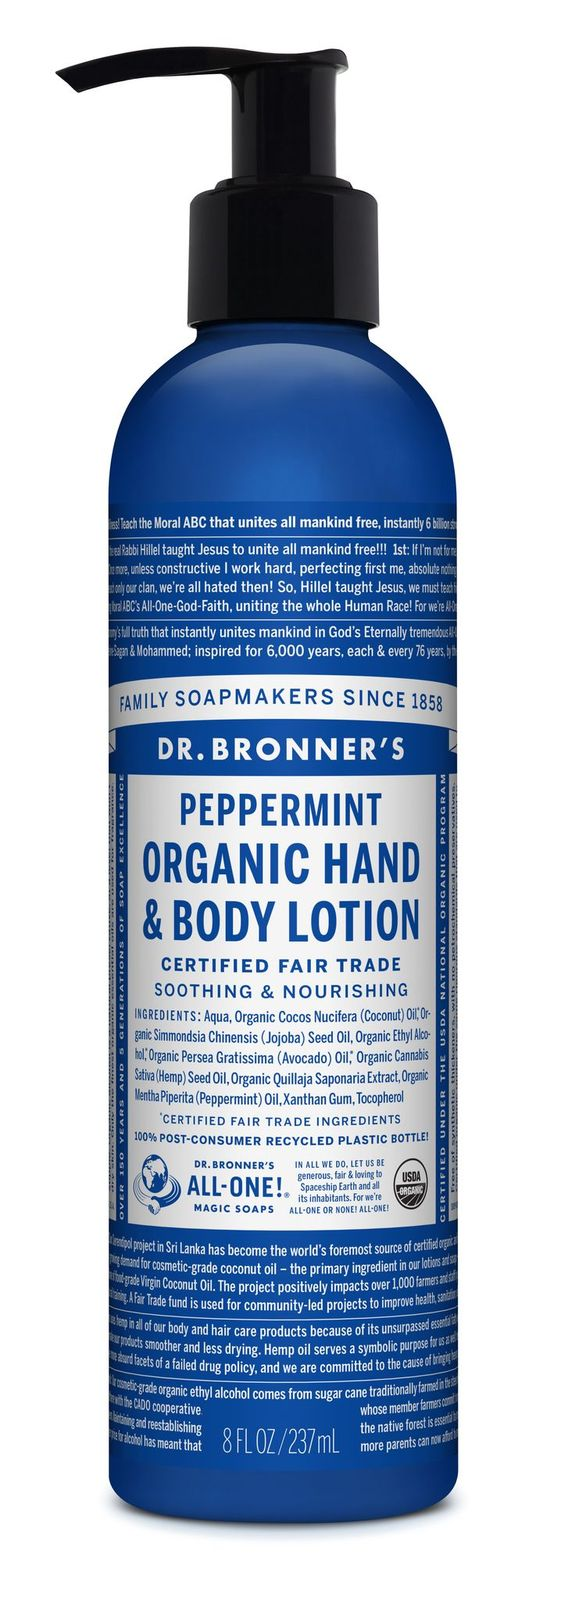 Dr Bronner's Peppermint Organic Hand & Body Lotion